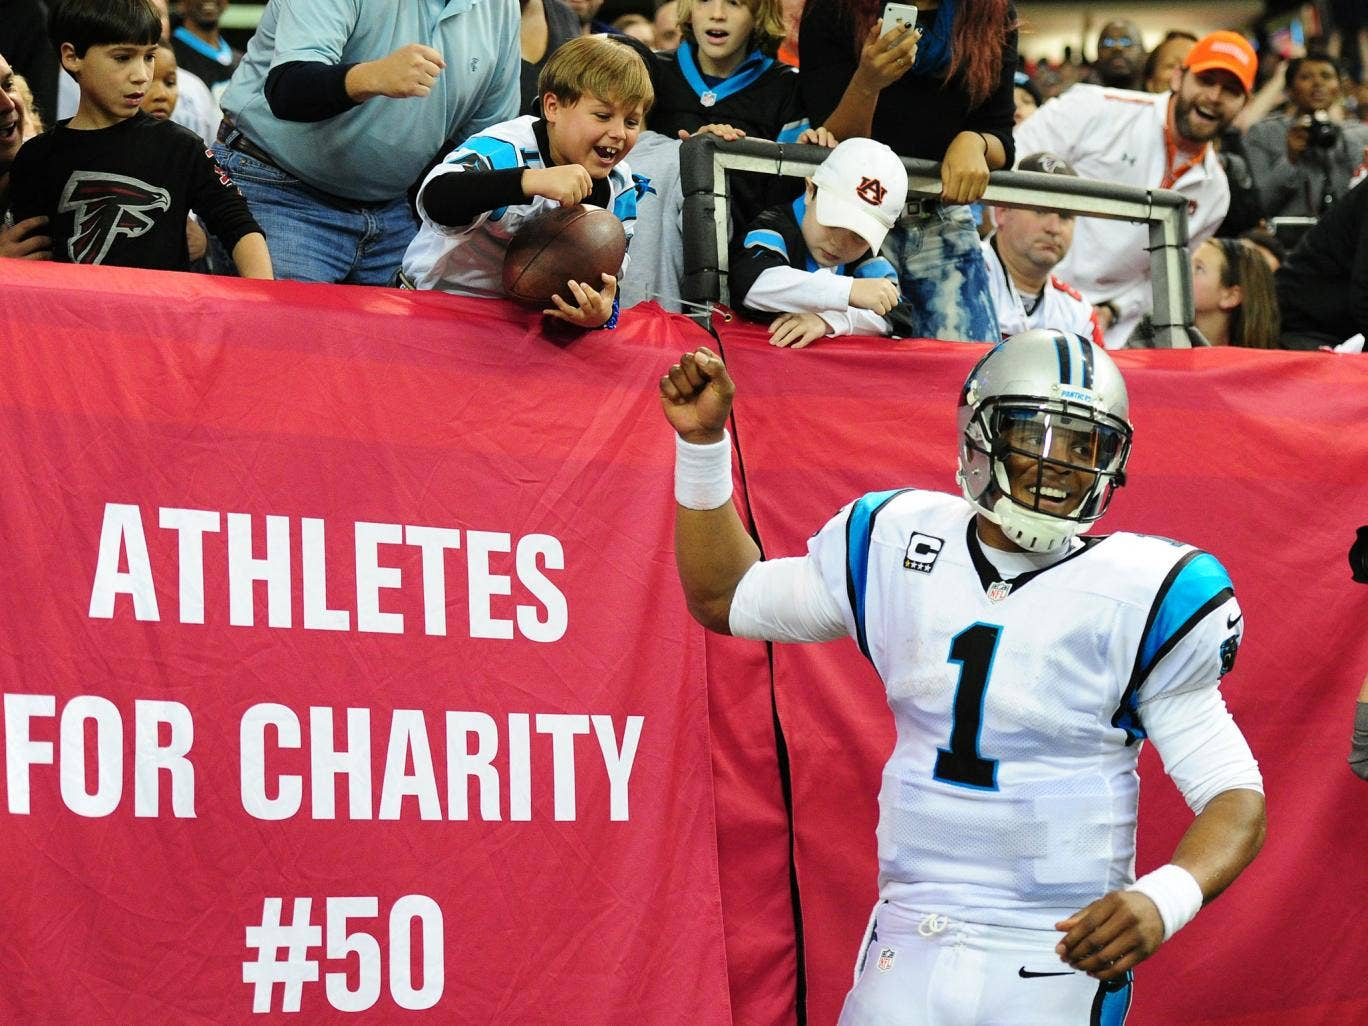 Carolina Panthers quarterback Cam Newton gives the ball to a young fan after running in a touchdown